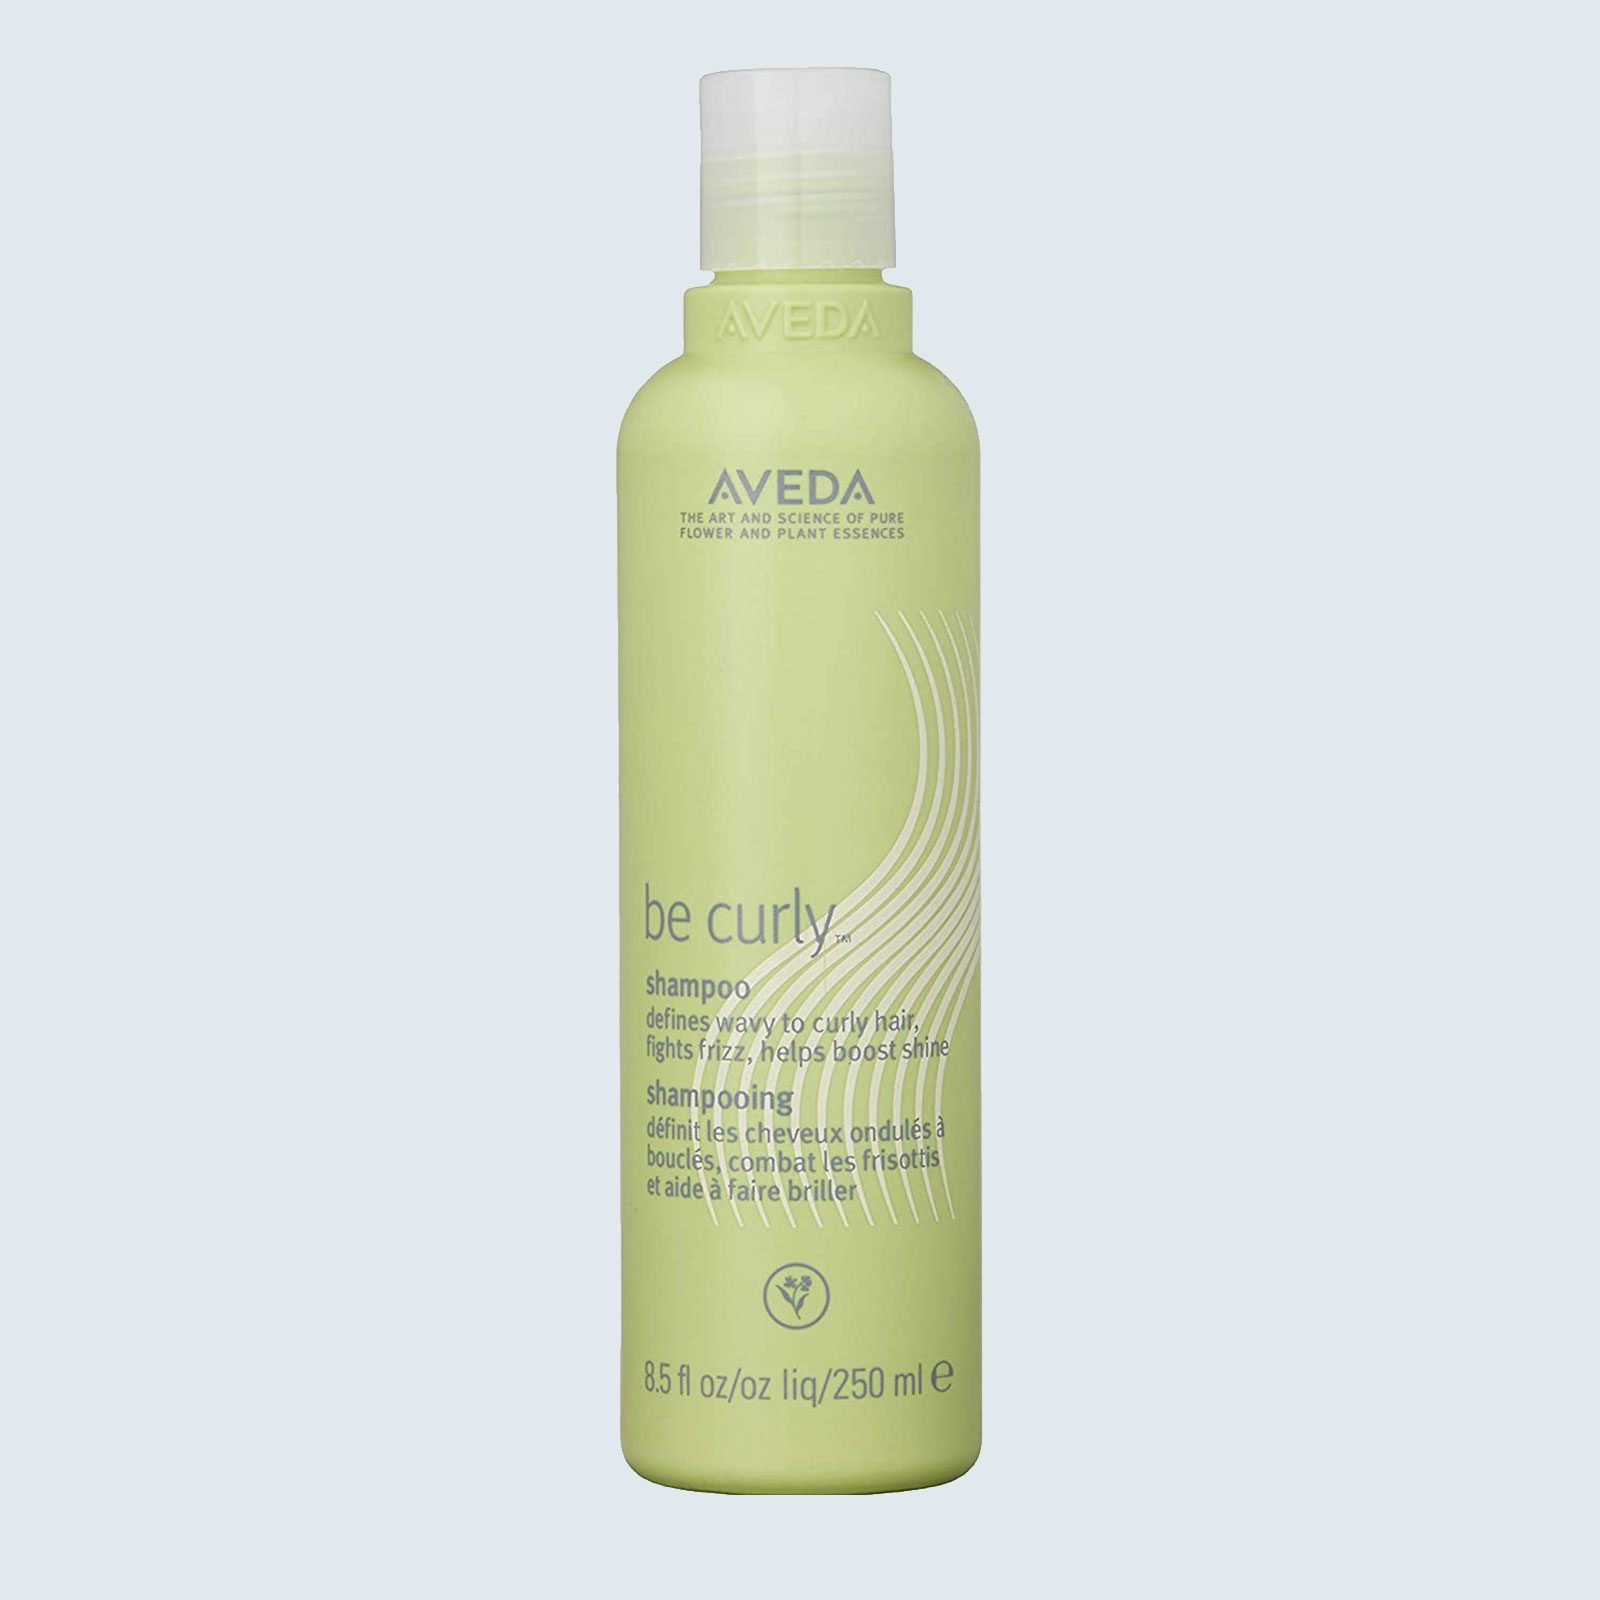 Best natural shampoo for curly hair: Aveda Be Curly